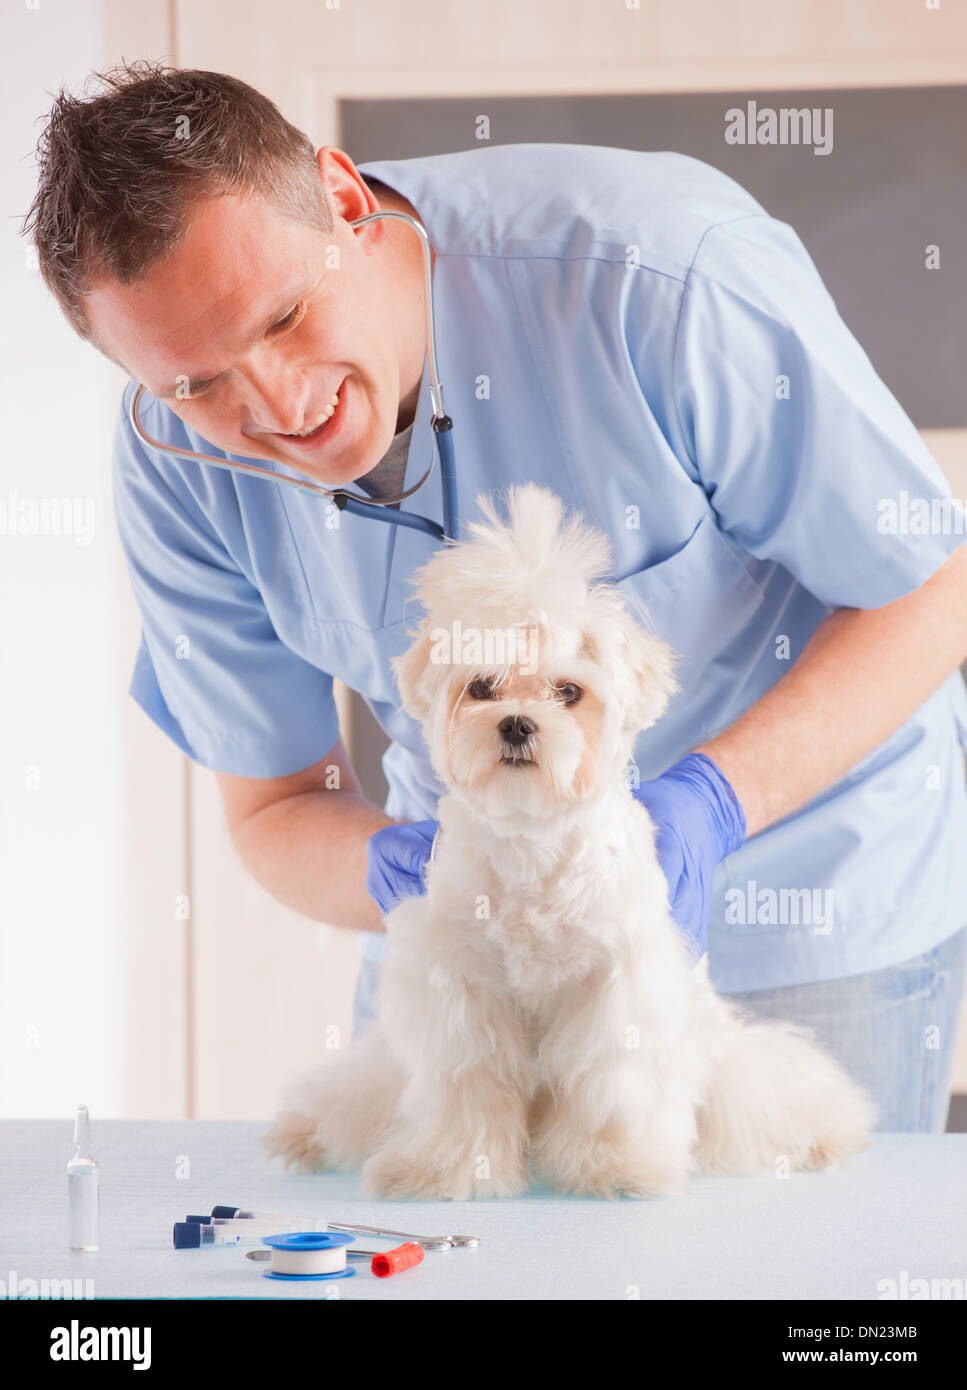 Smiling veterinian making a checkup of a dog maltese. - Stock Image